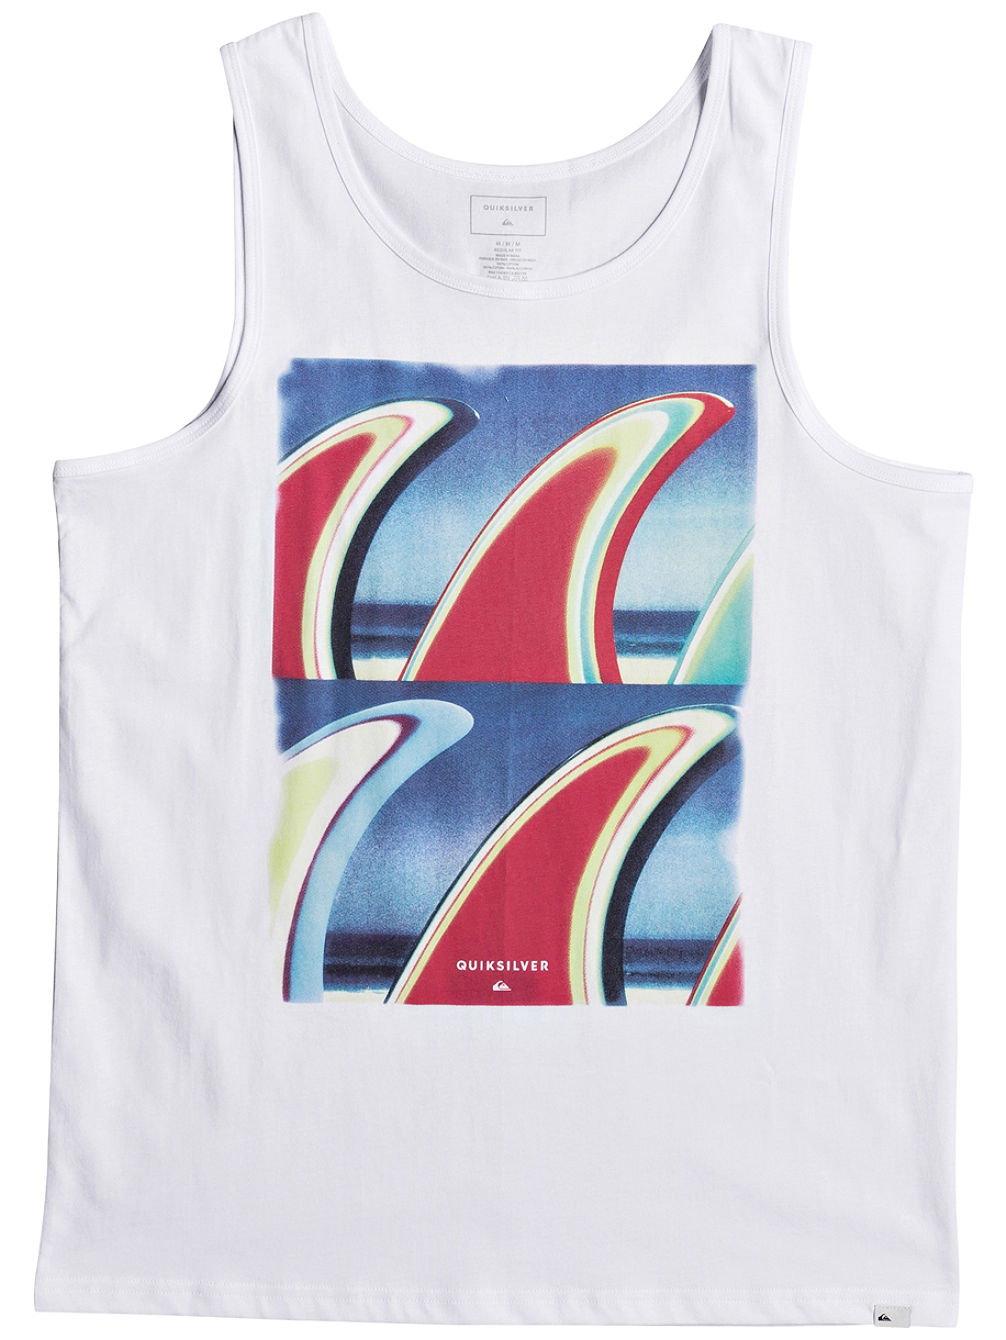 Fin Fanatic Tank Top